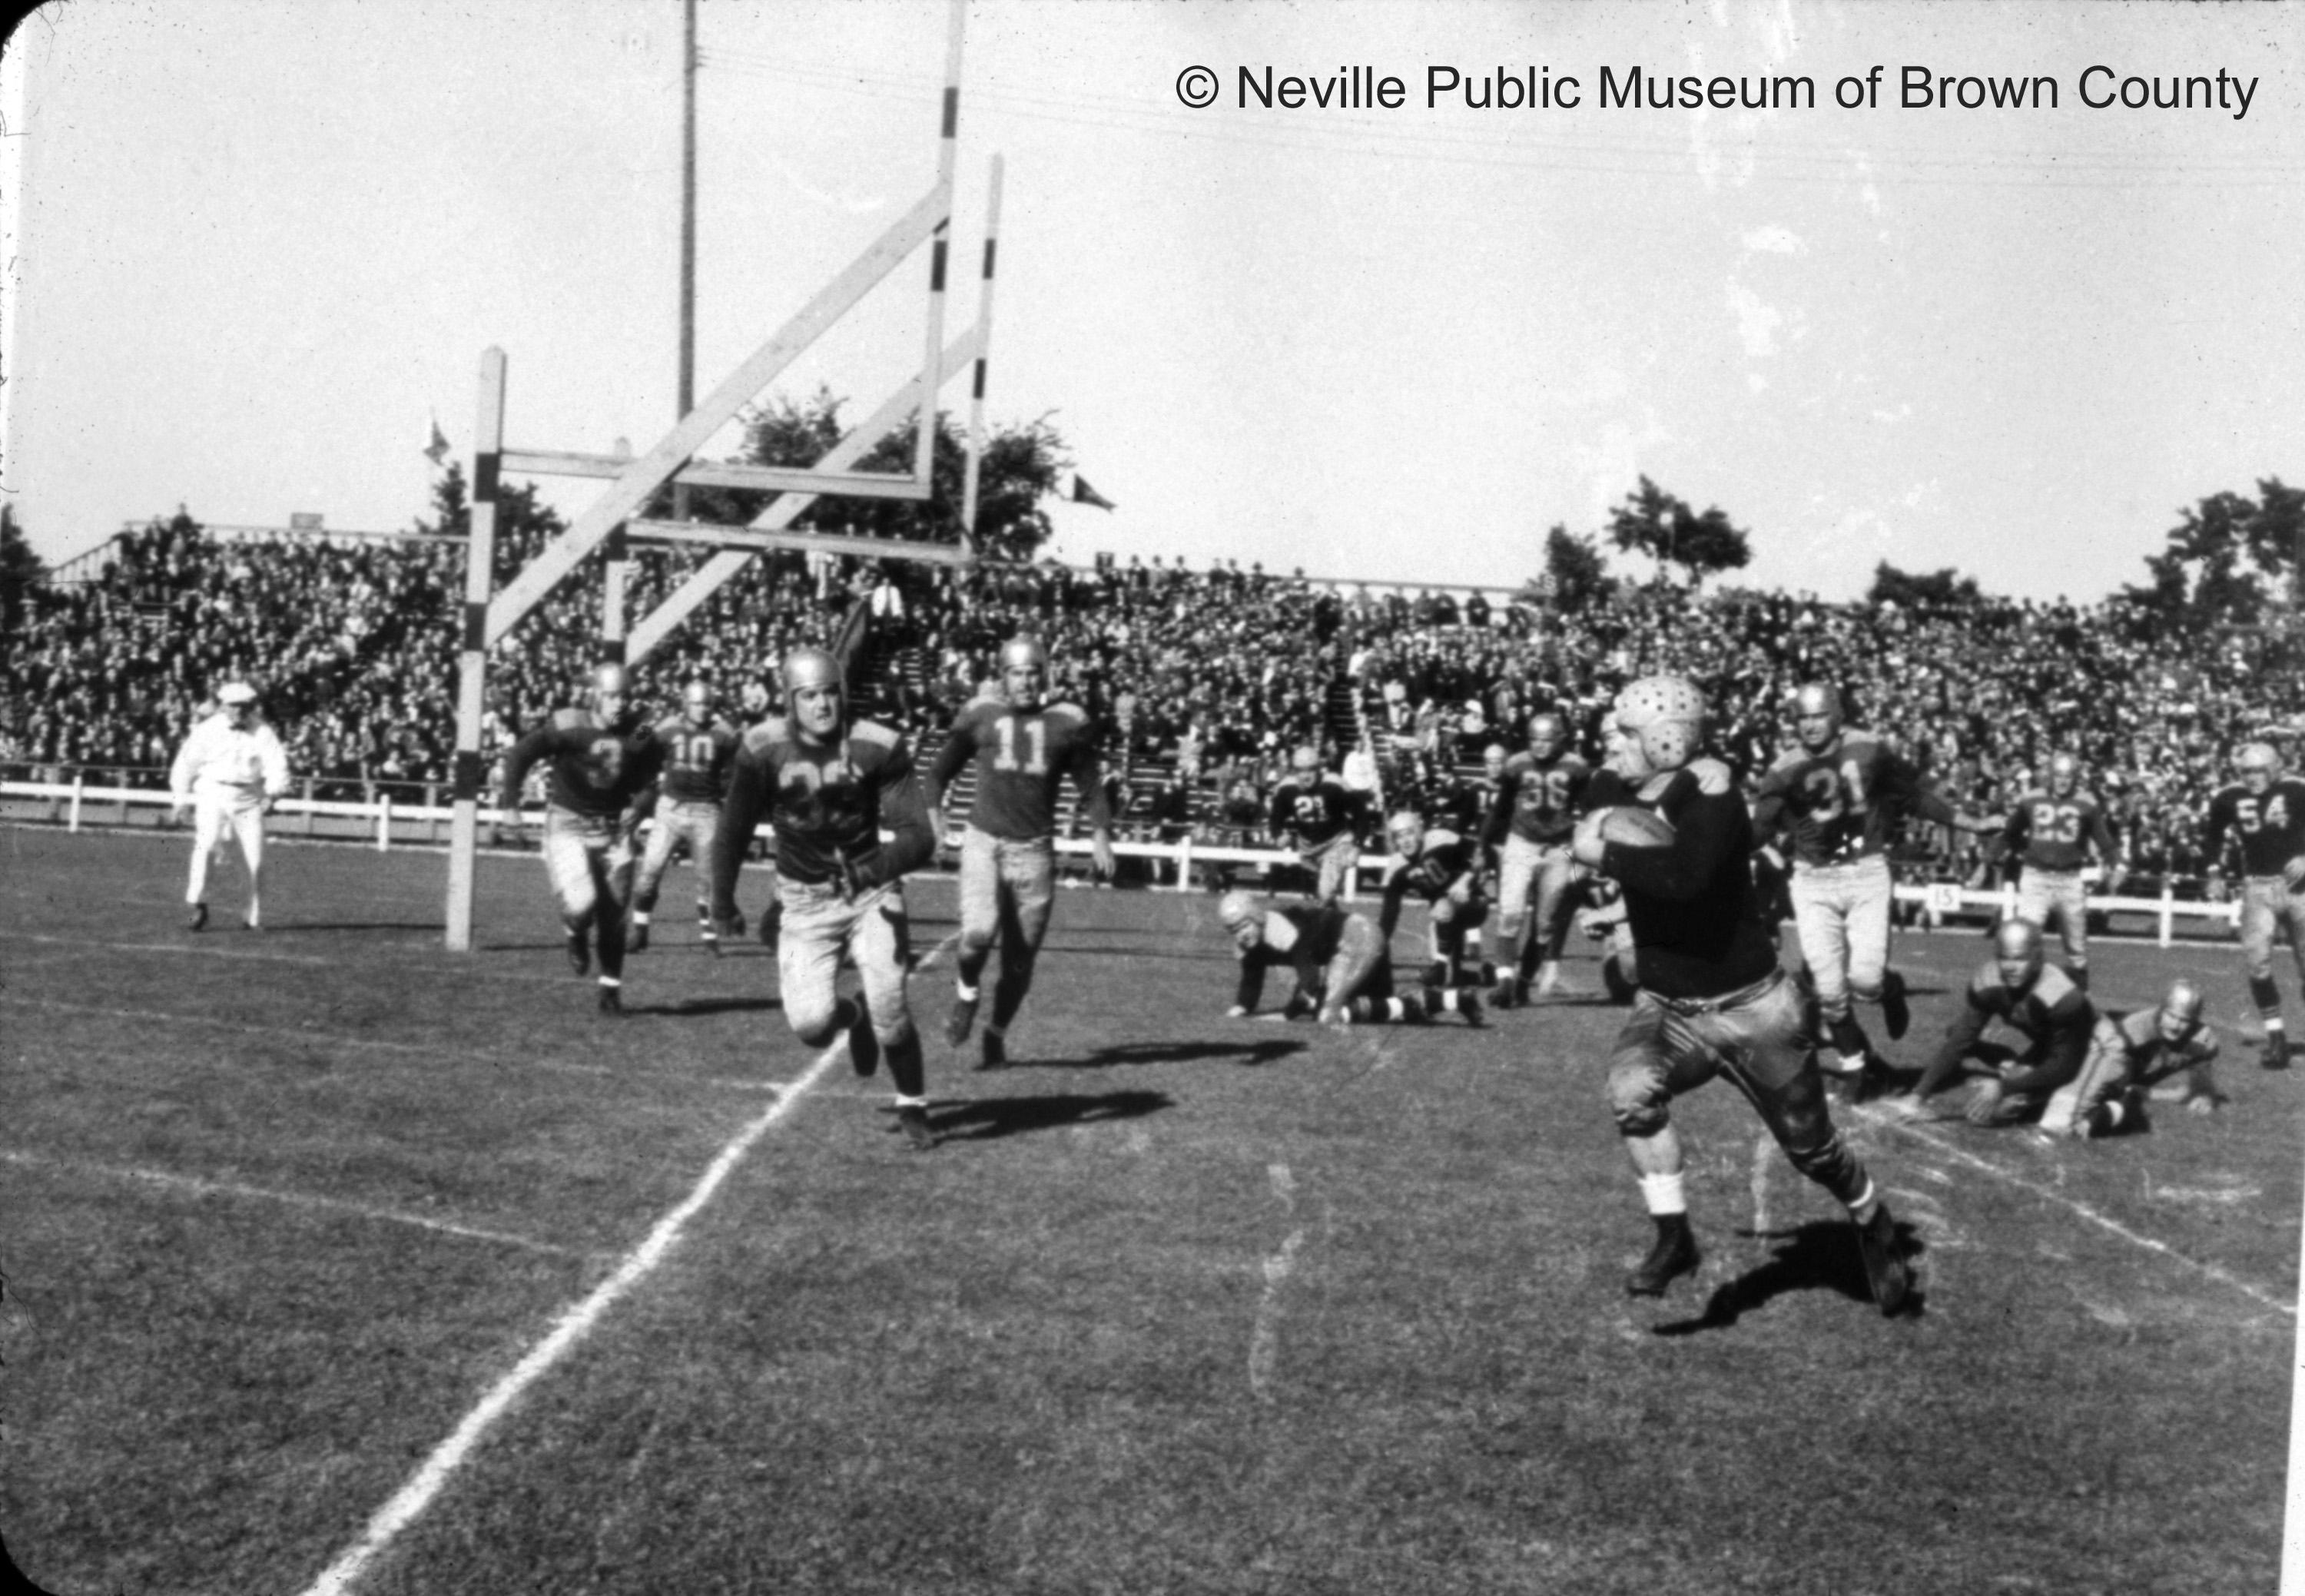 City Stadium brought several NFL championship seasons to the Packers in 1929, 1930, 1931, 1936, 1939, and 1944. (Courtesy: Neville Public Museum of Brown County)<p></p>